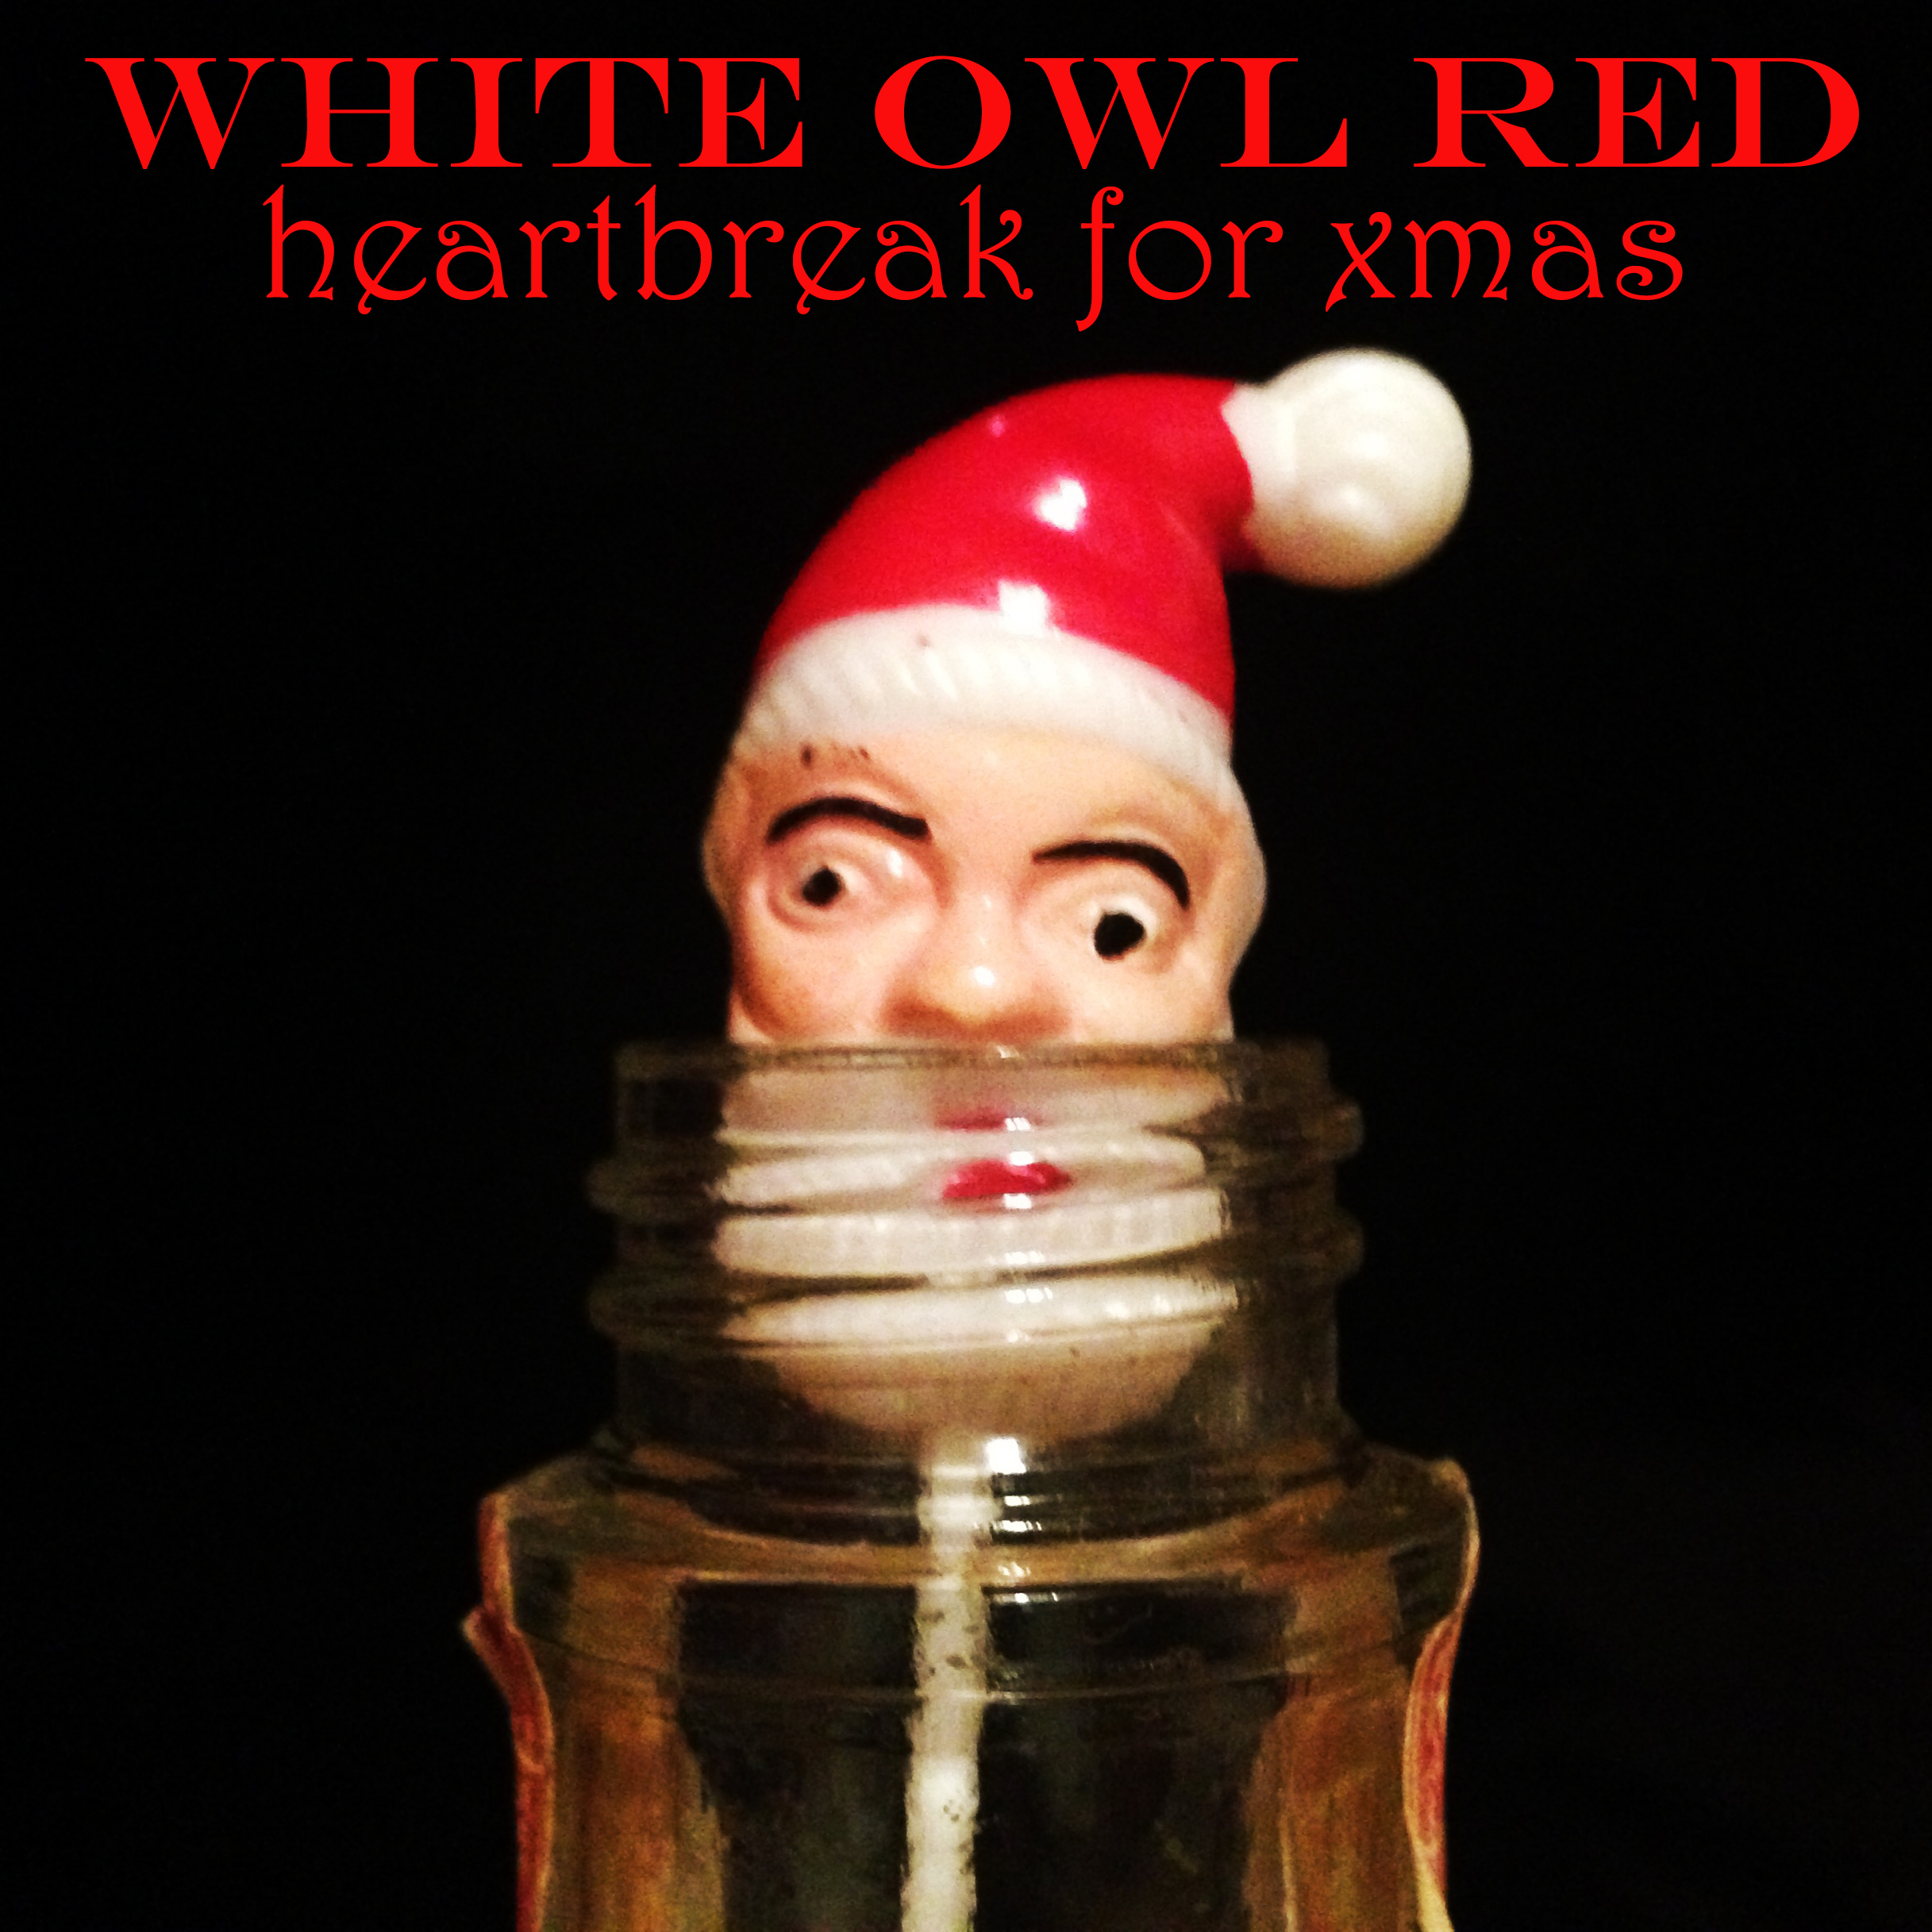 White Owl Red - Heartbreak For Christmas